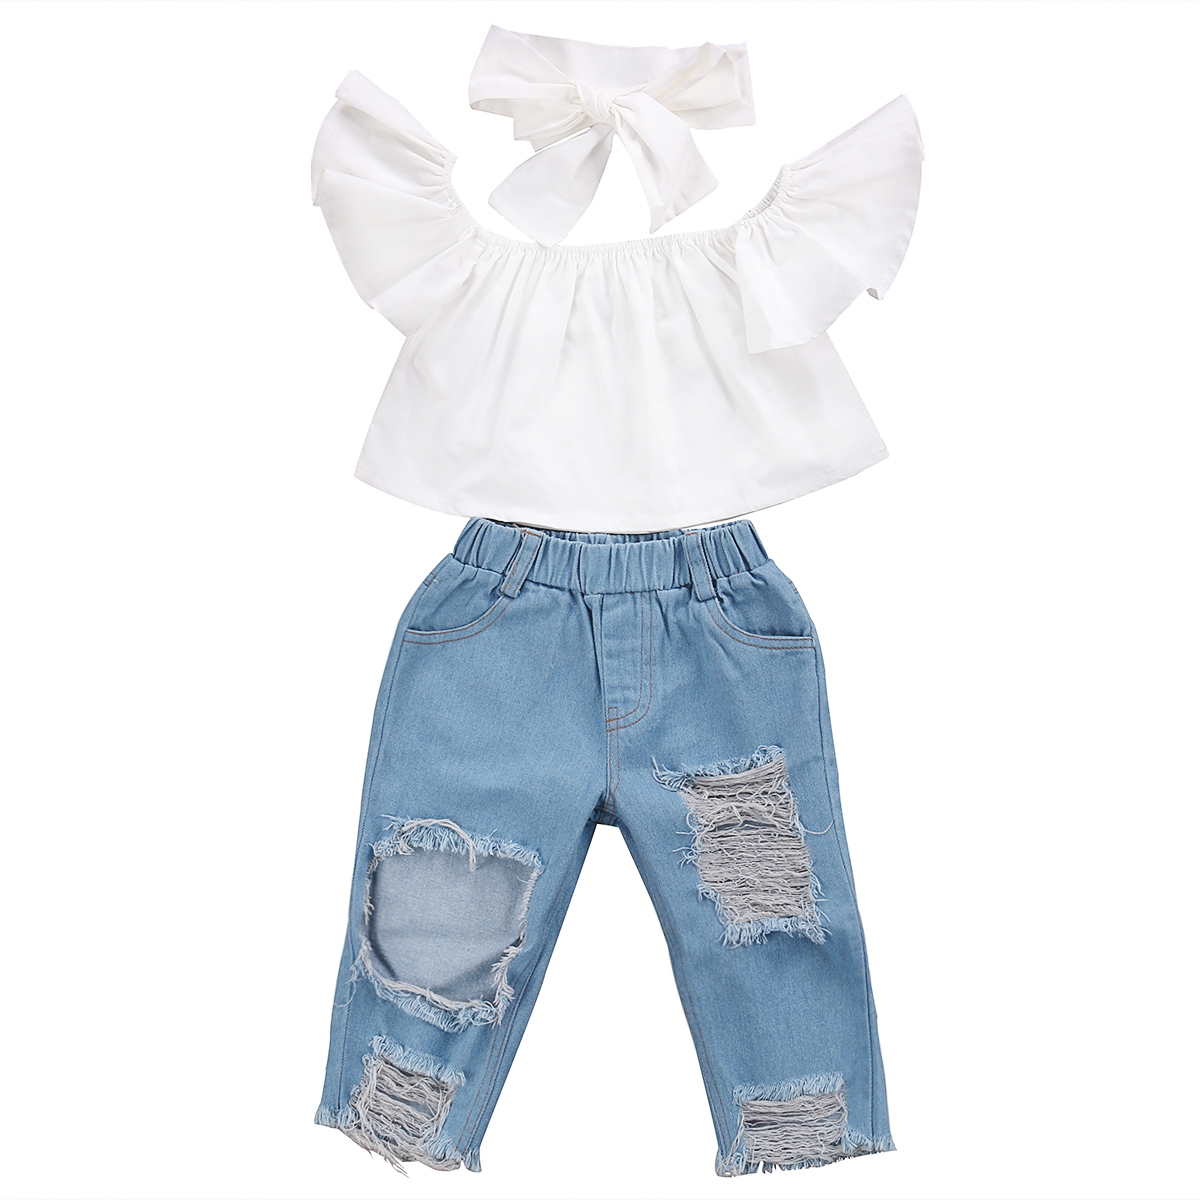 Children Clothes Set 2017 Fashion Off Shoulder White Baby Girls Shirt +Denim Pants + headband 3pcs Suit Children Clothing